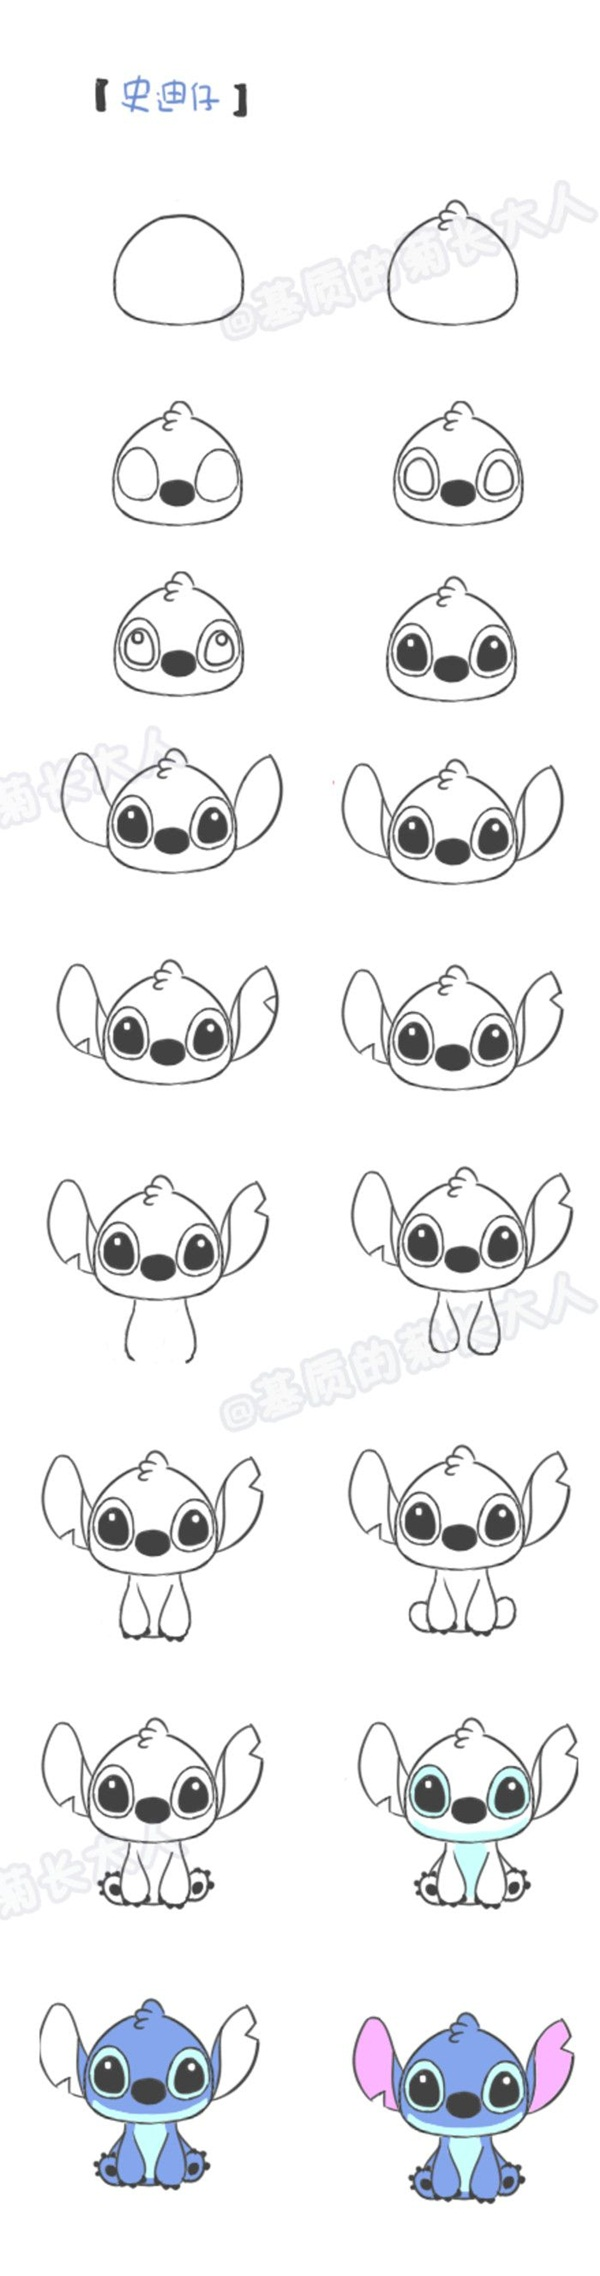 How To Draw Cartoon Characters Step By Step 30 Examples